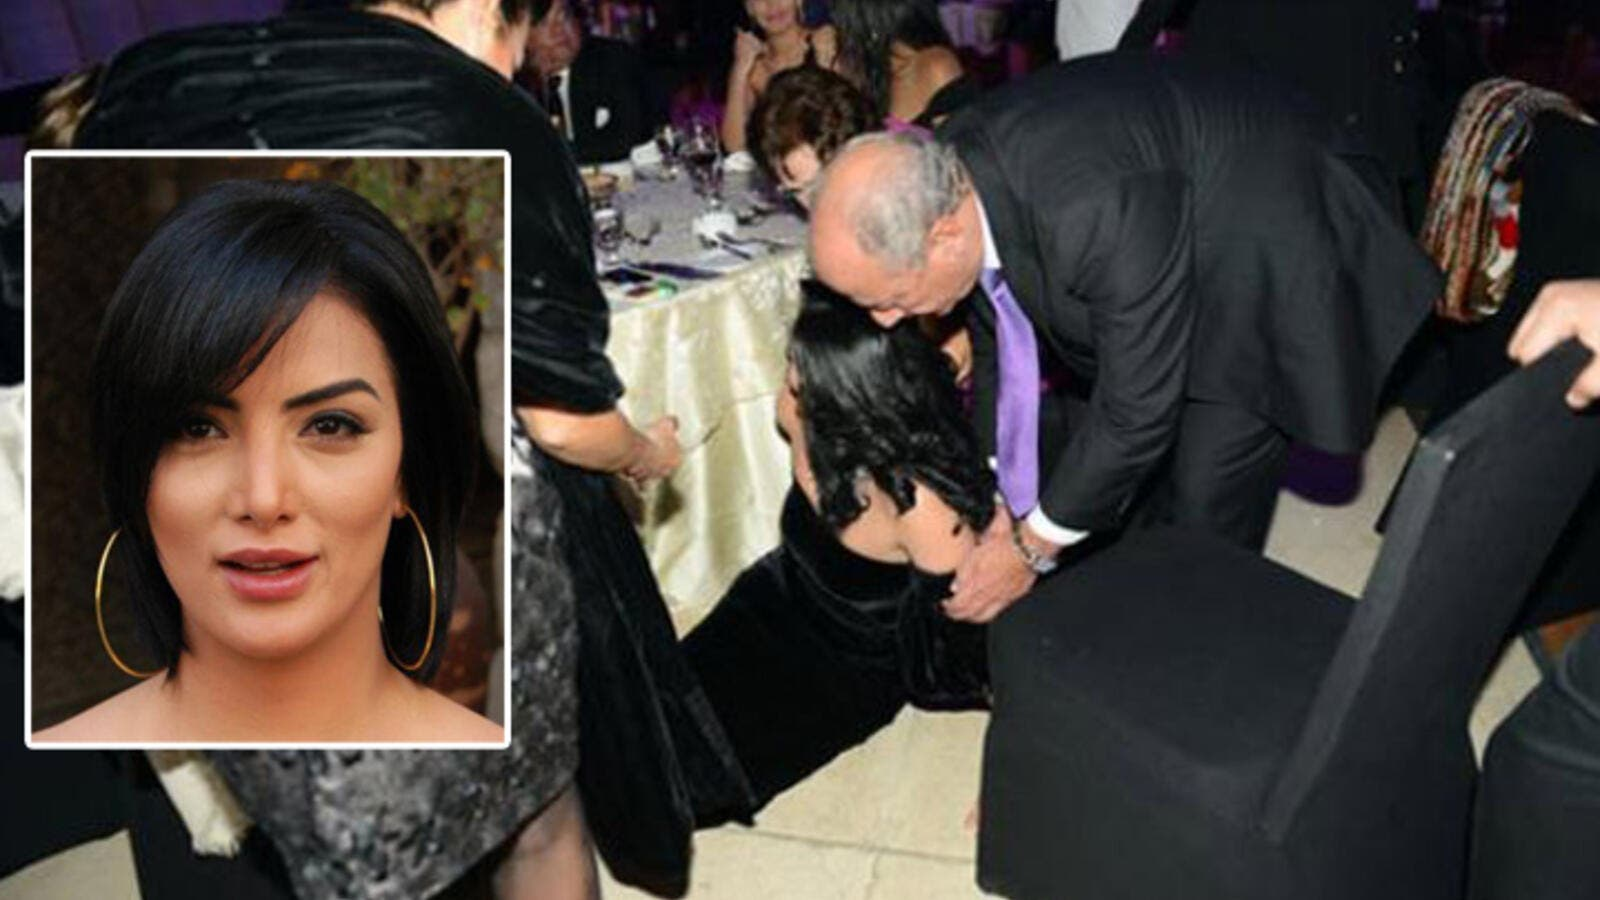 The funny moment Horeya fell off her seat in front of her celeb friends. (Image: Facebook)